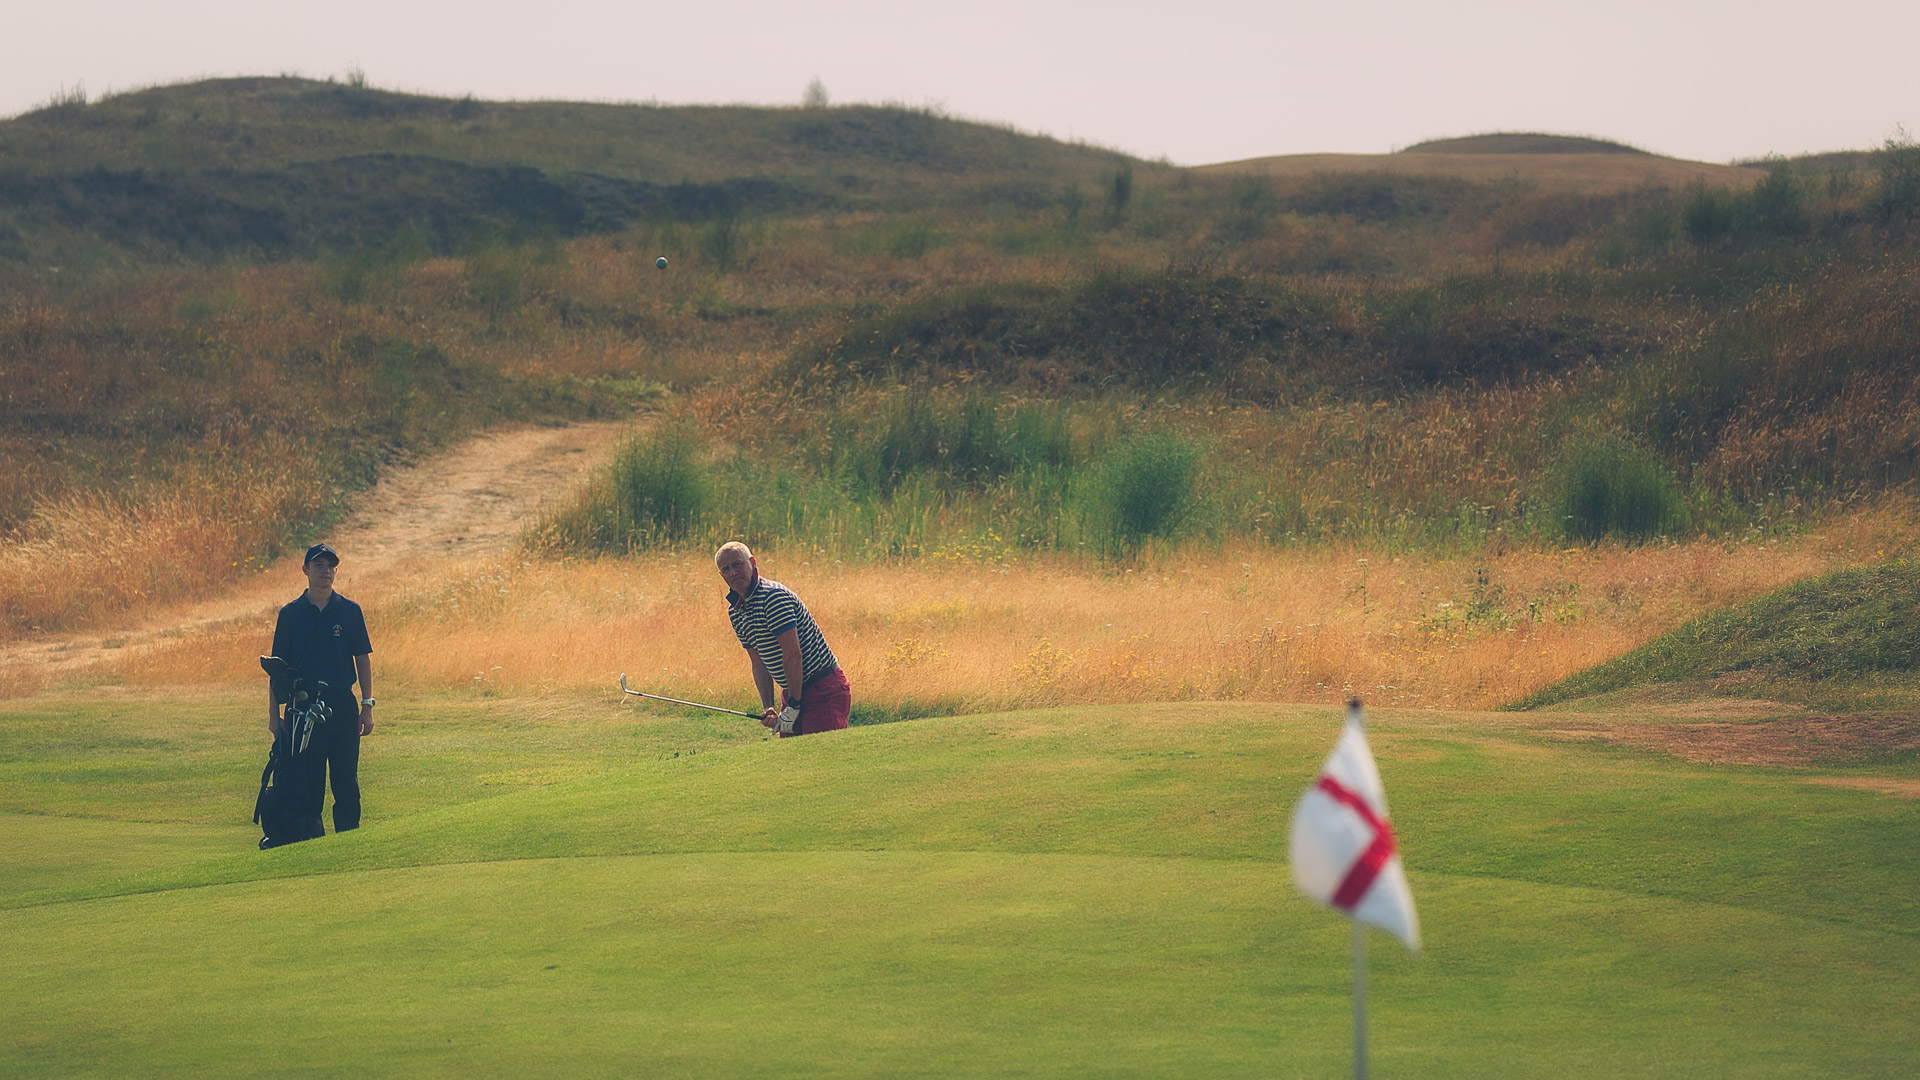 A-Day-At-Royal-St-Georges-Golf-Club1279-Edit